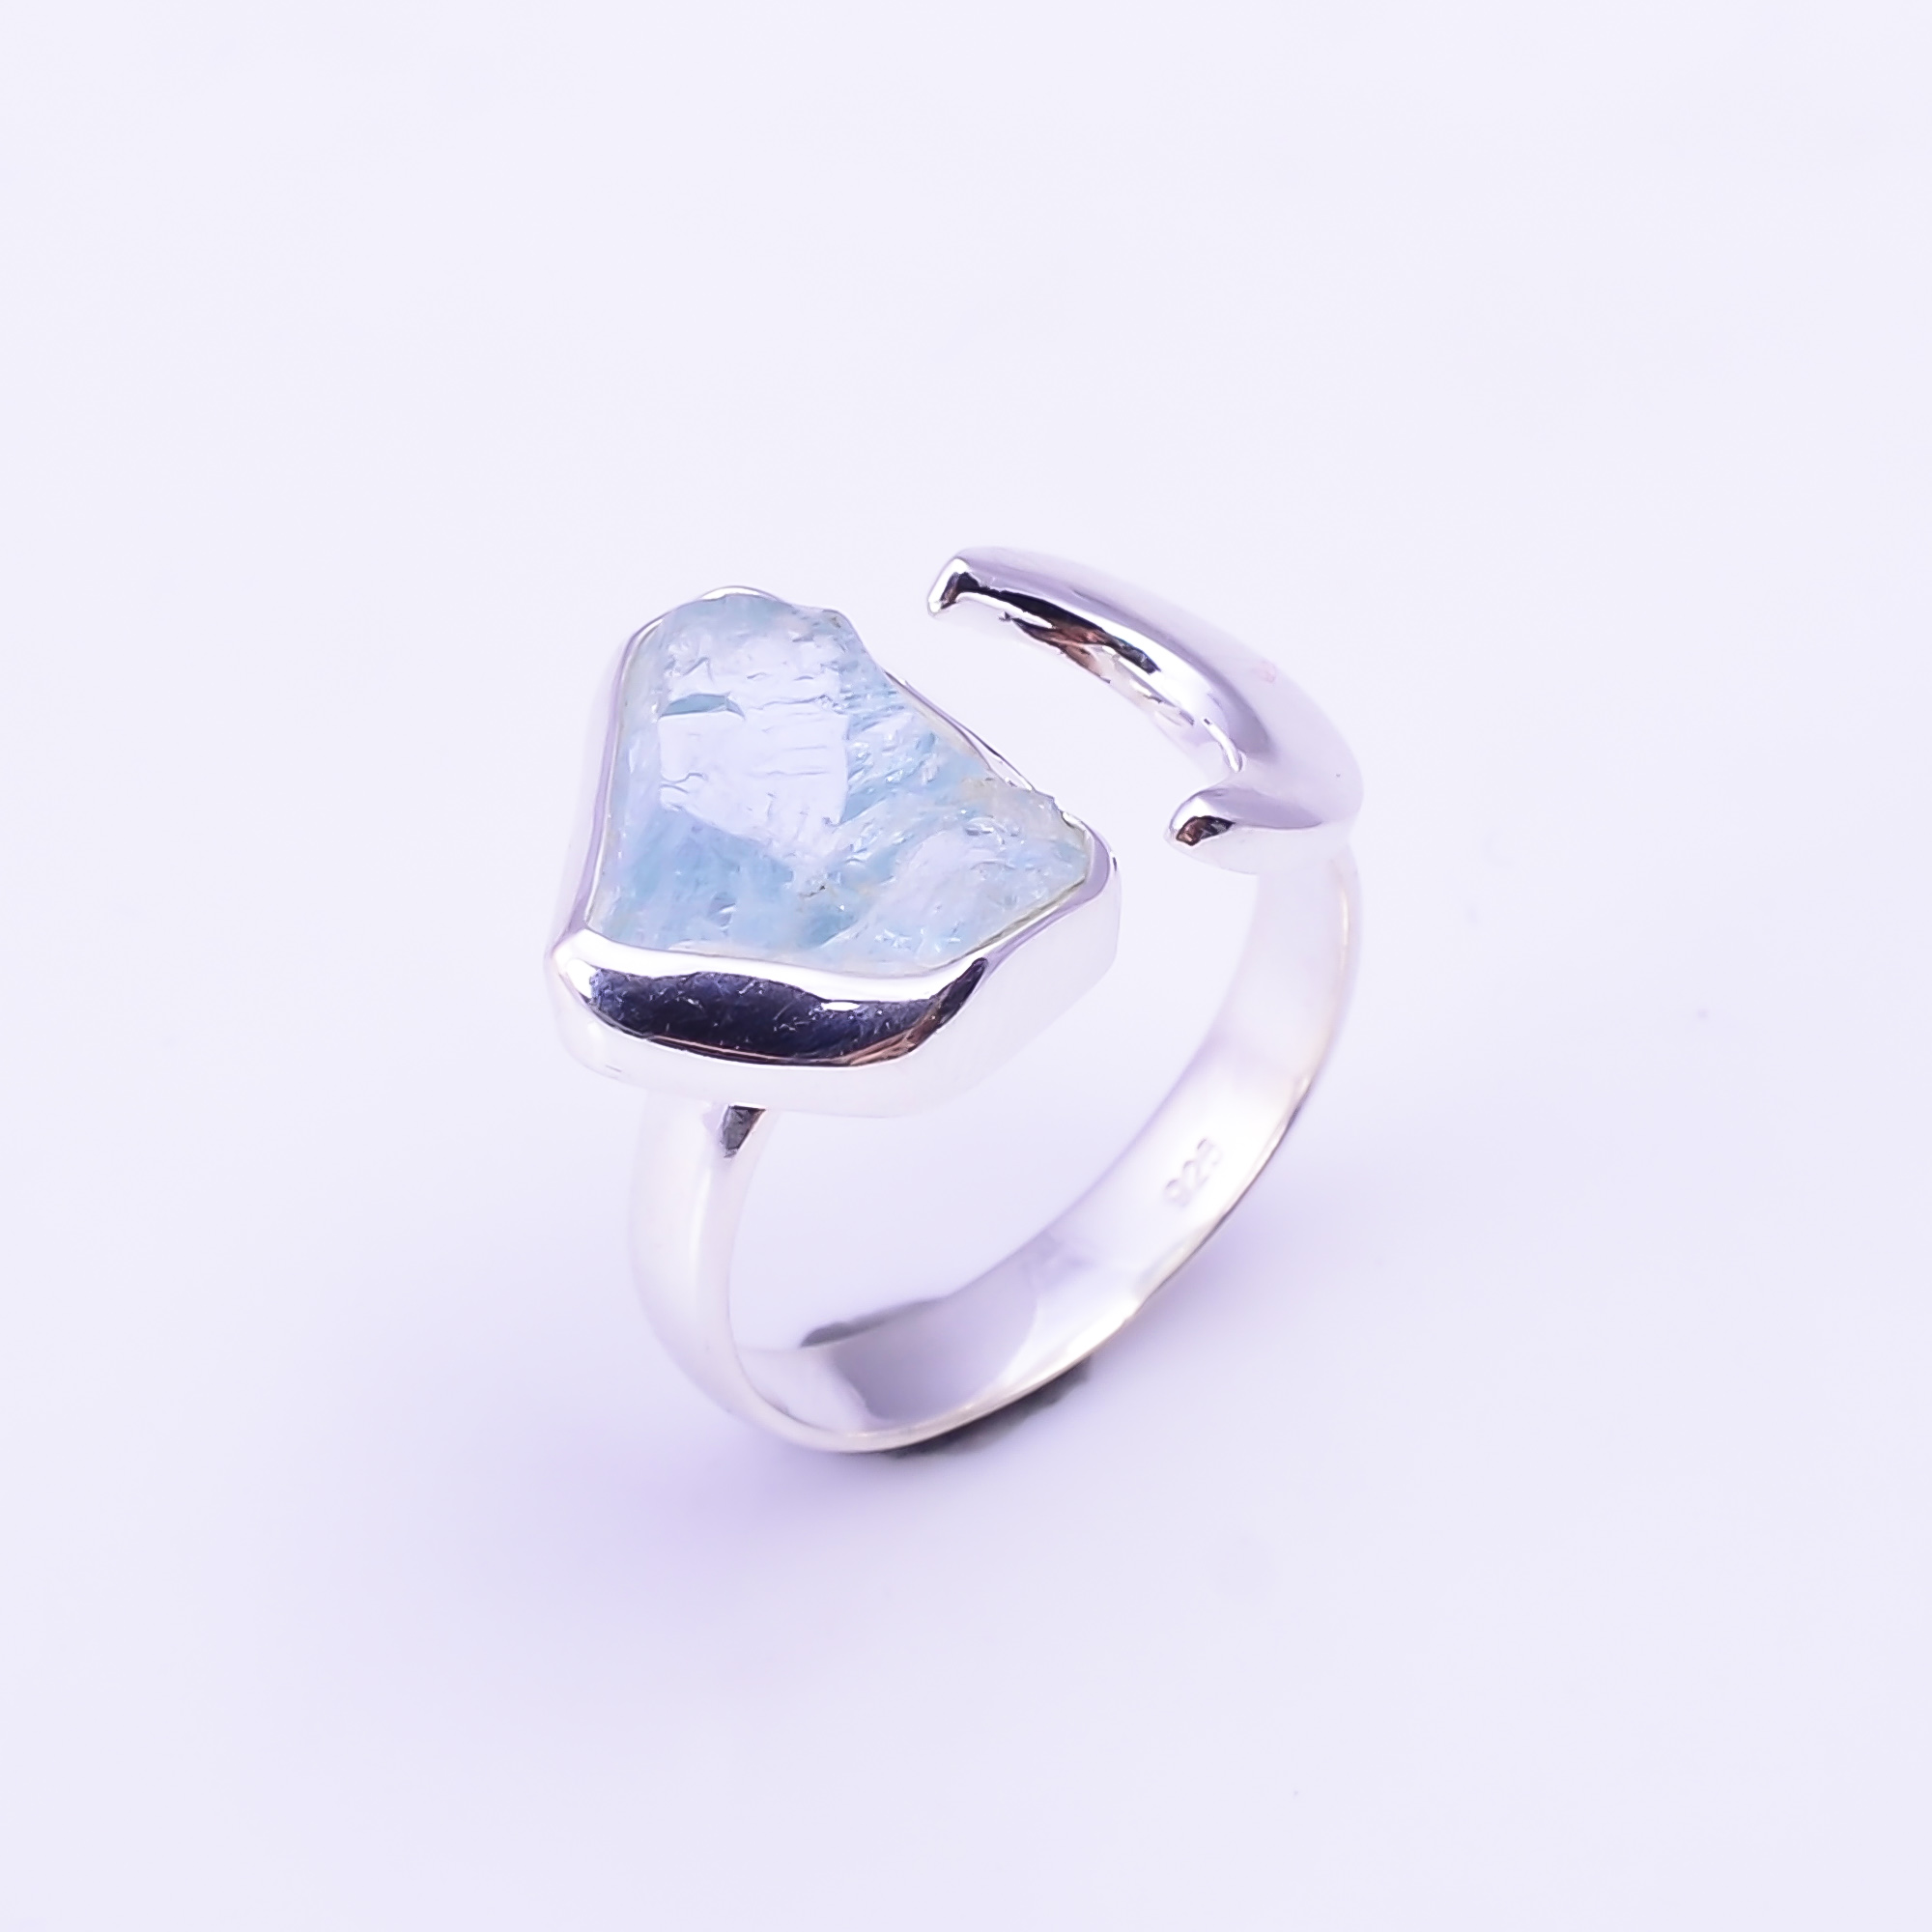 Raw Aquamarine Gemstone 925 Sterling Silver Ring Size US 7.75 Adjustable